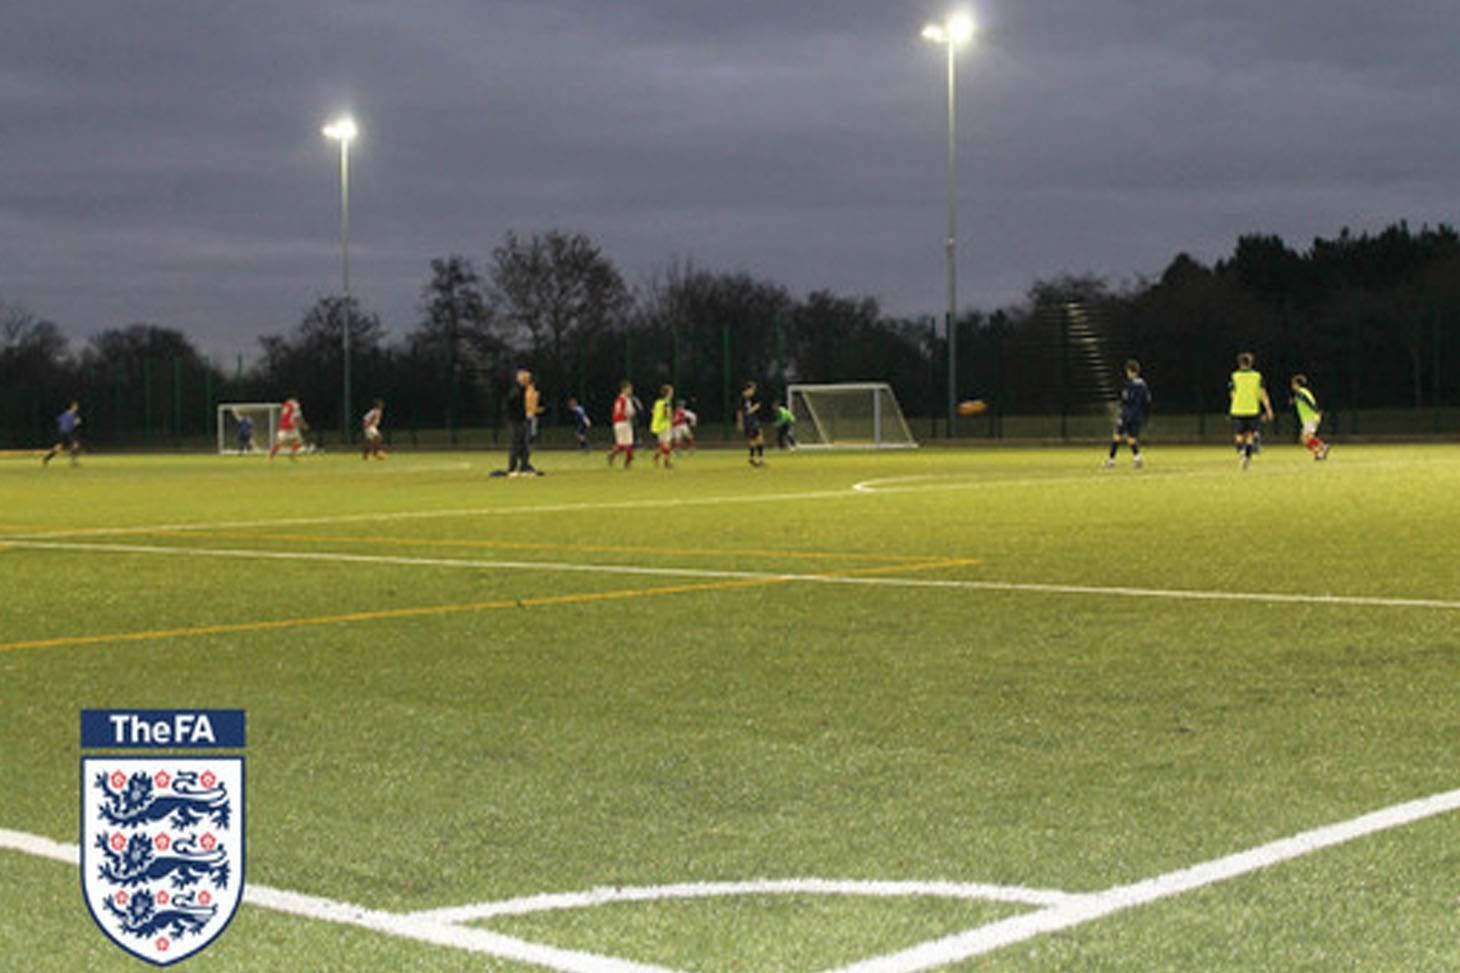 Bishop Rawstorne CE Academy 7 a side | 3G Astroturf football pitch